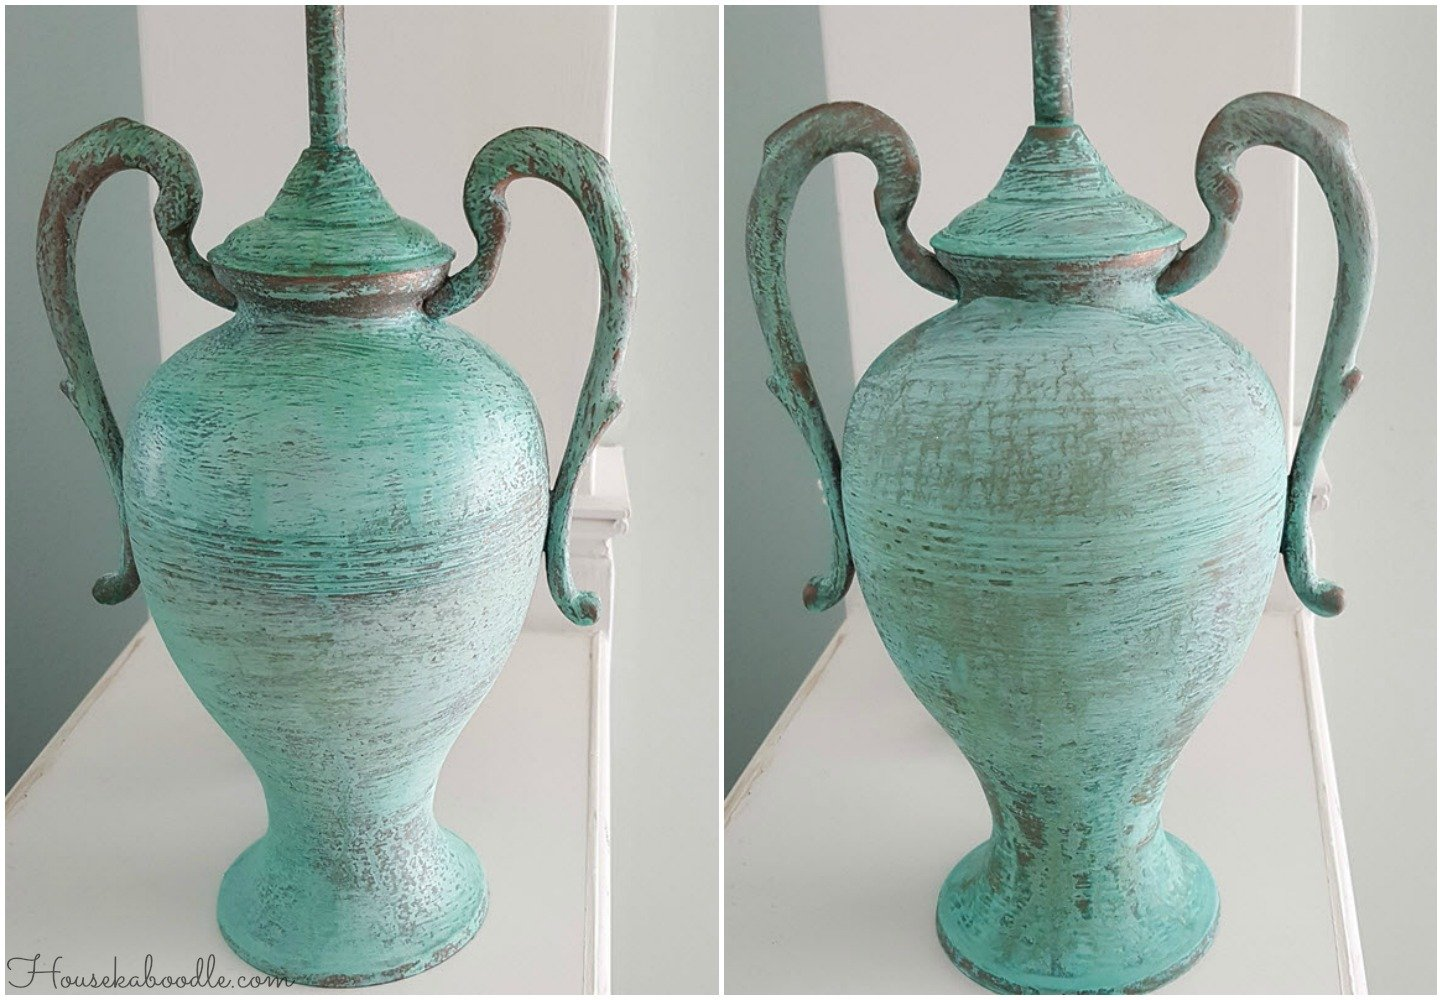 Two lamps transformed with Modern Masters Metal Effects in Green Patina - Housekaboodle